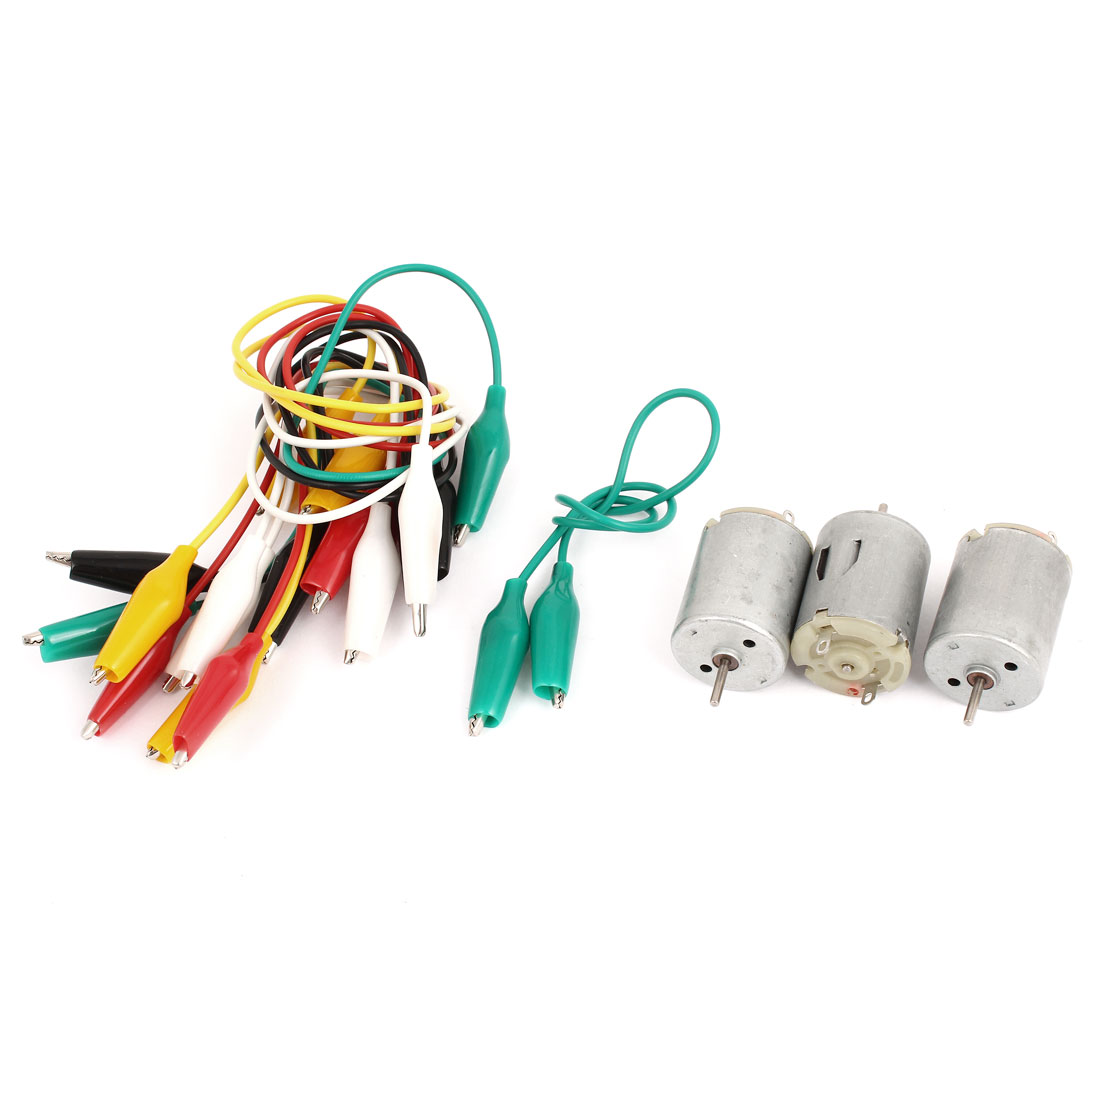 3Pcs DC 6V 2 Terminals Type 280 Miniature Mini High Torque Motor 9000RPM w Alligator Clip Cable